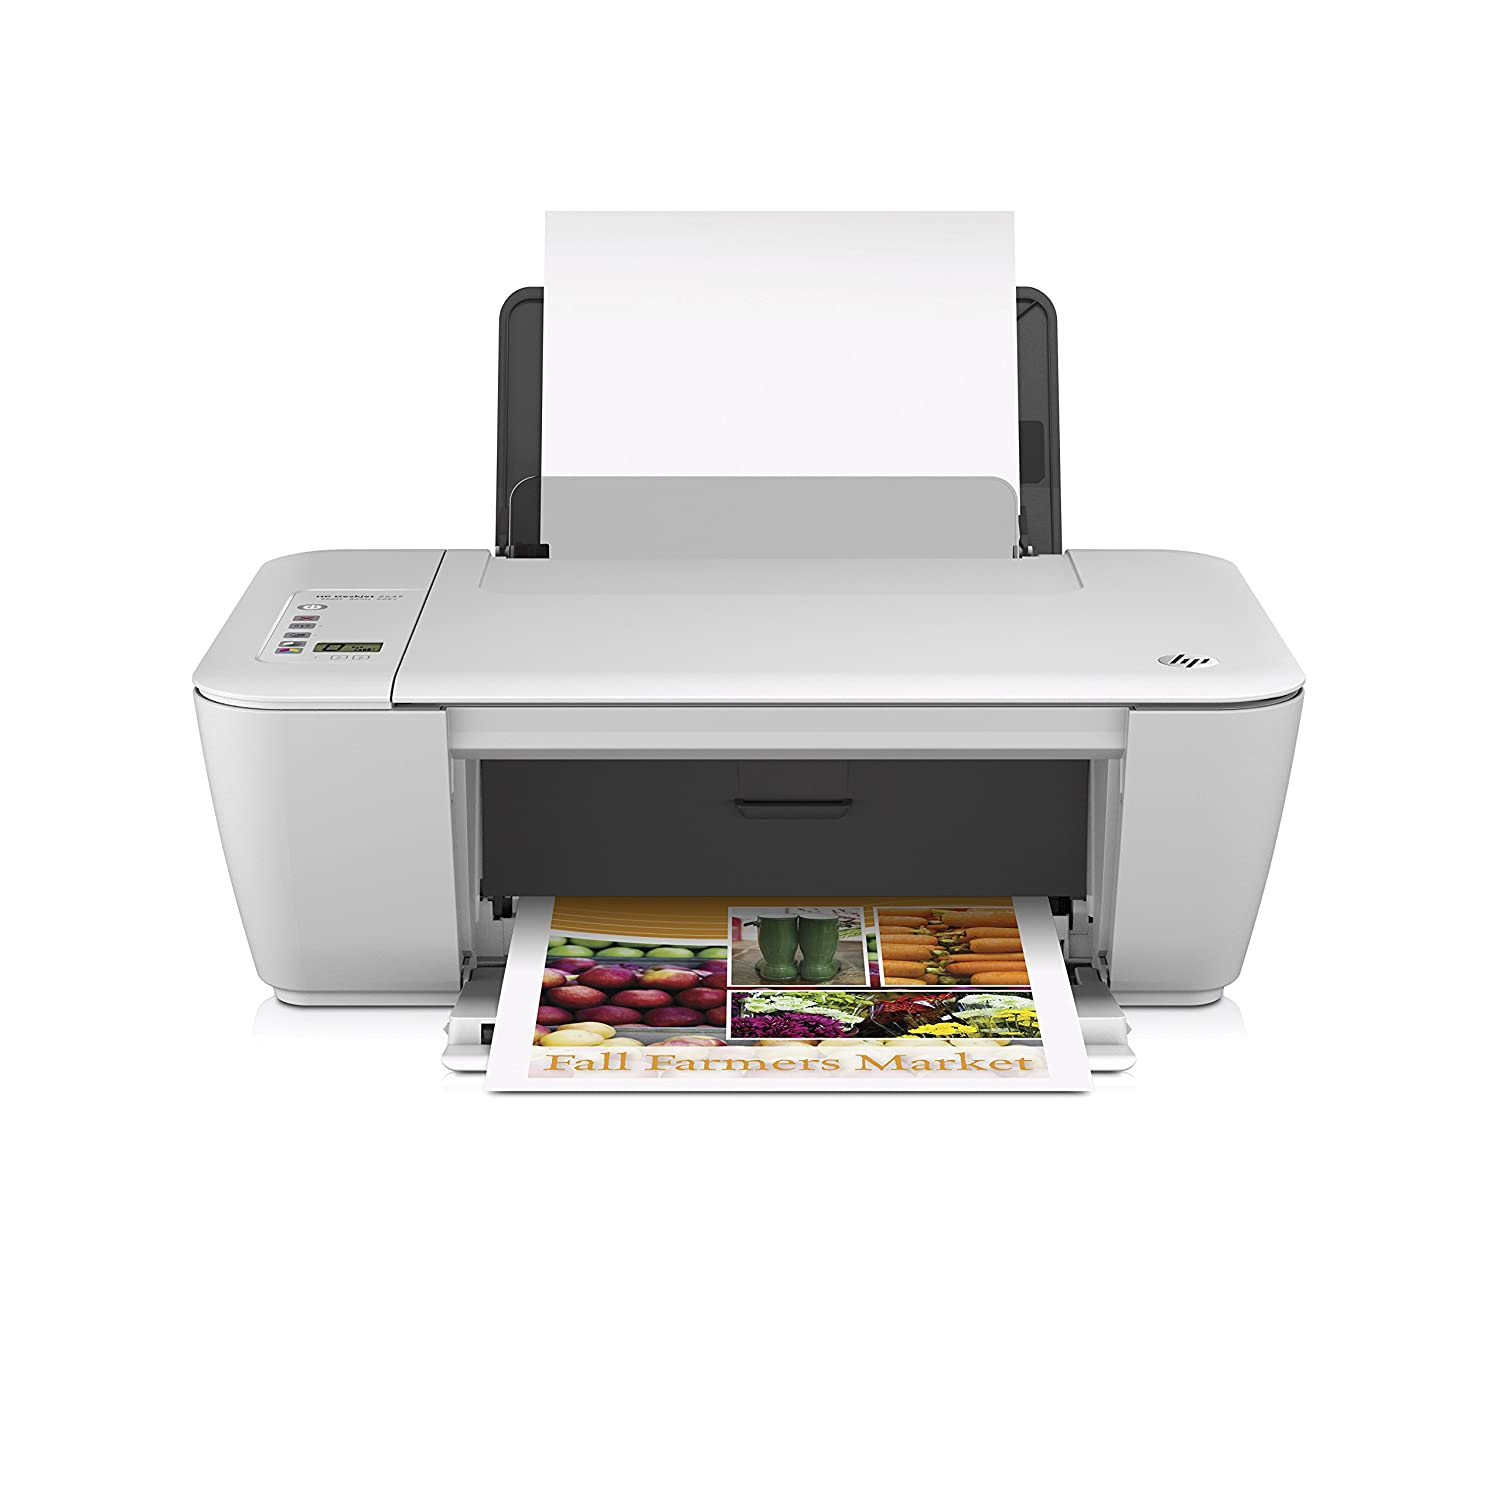 Amazon.com: HP Deskjet 2547 All-in-One Printer: Electronics